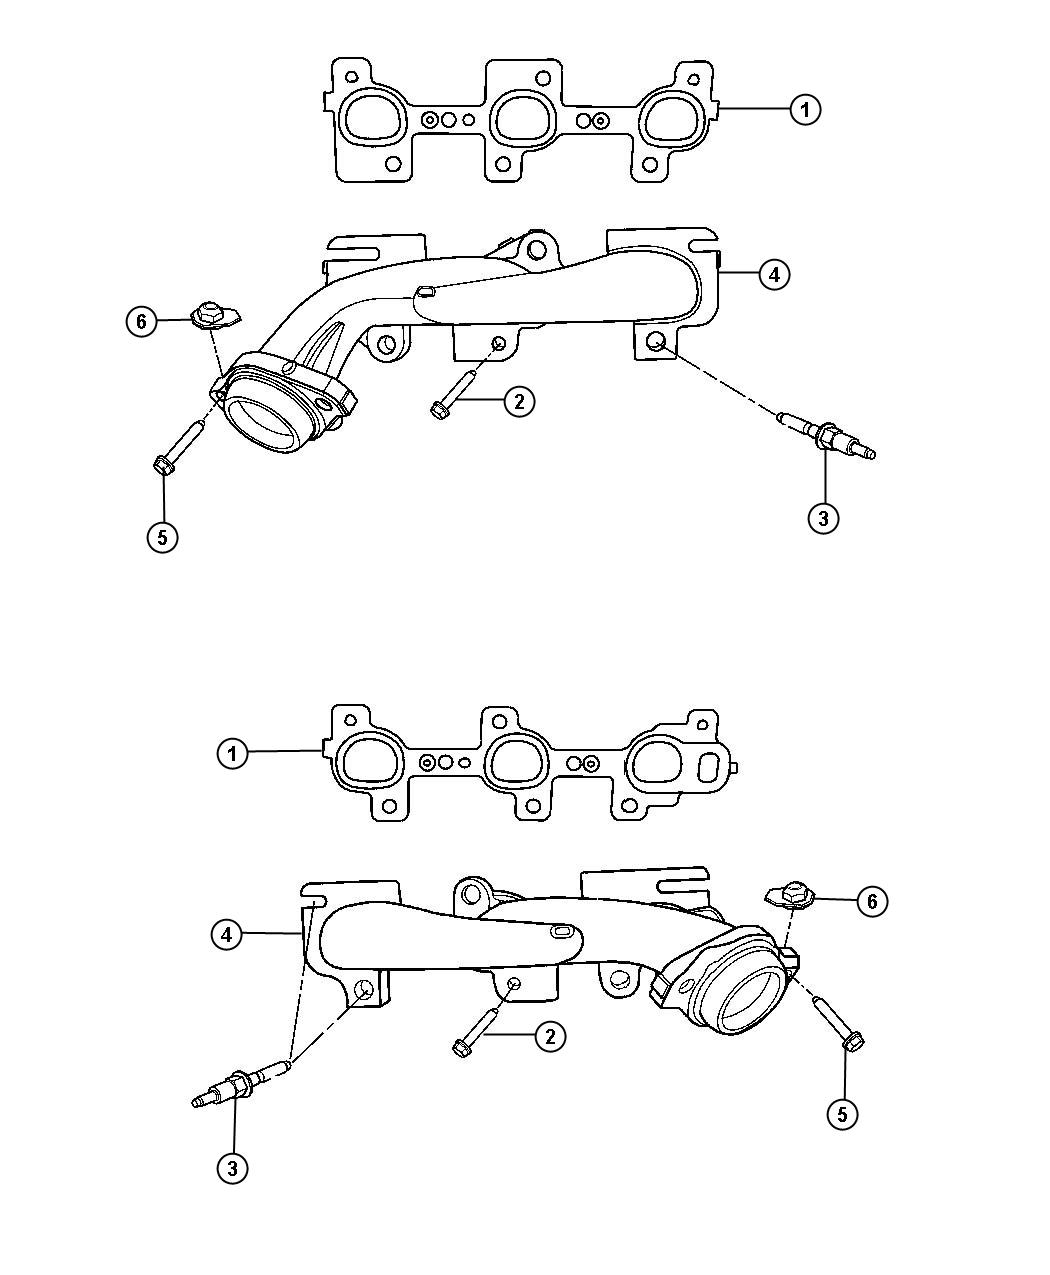 Jeep Commander Shield. Exhaust manifold. Right, right side